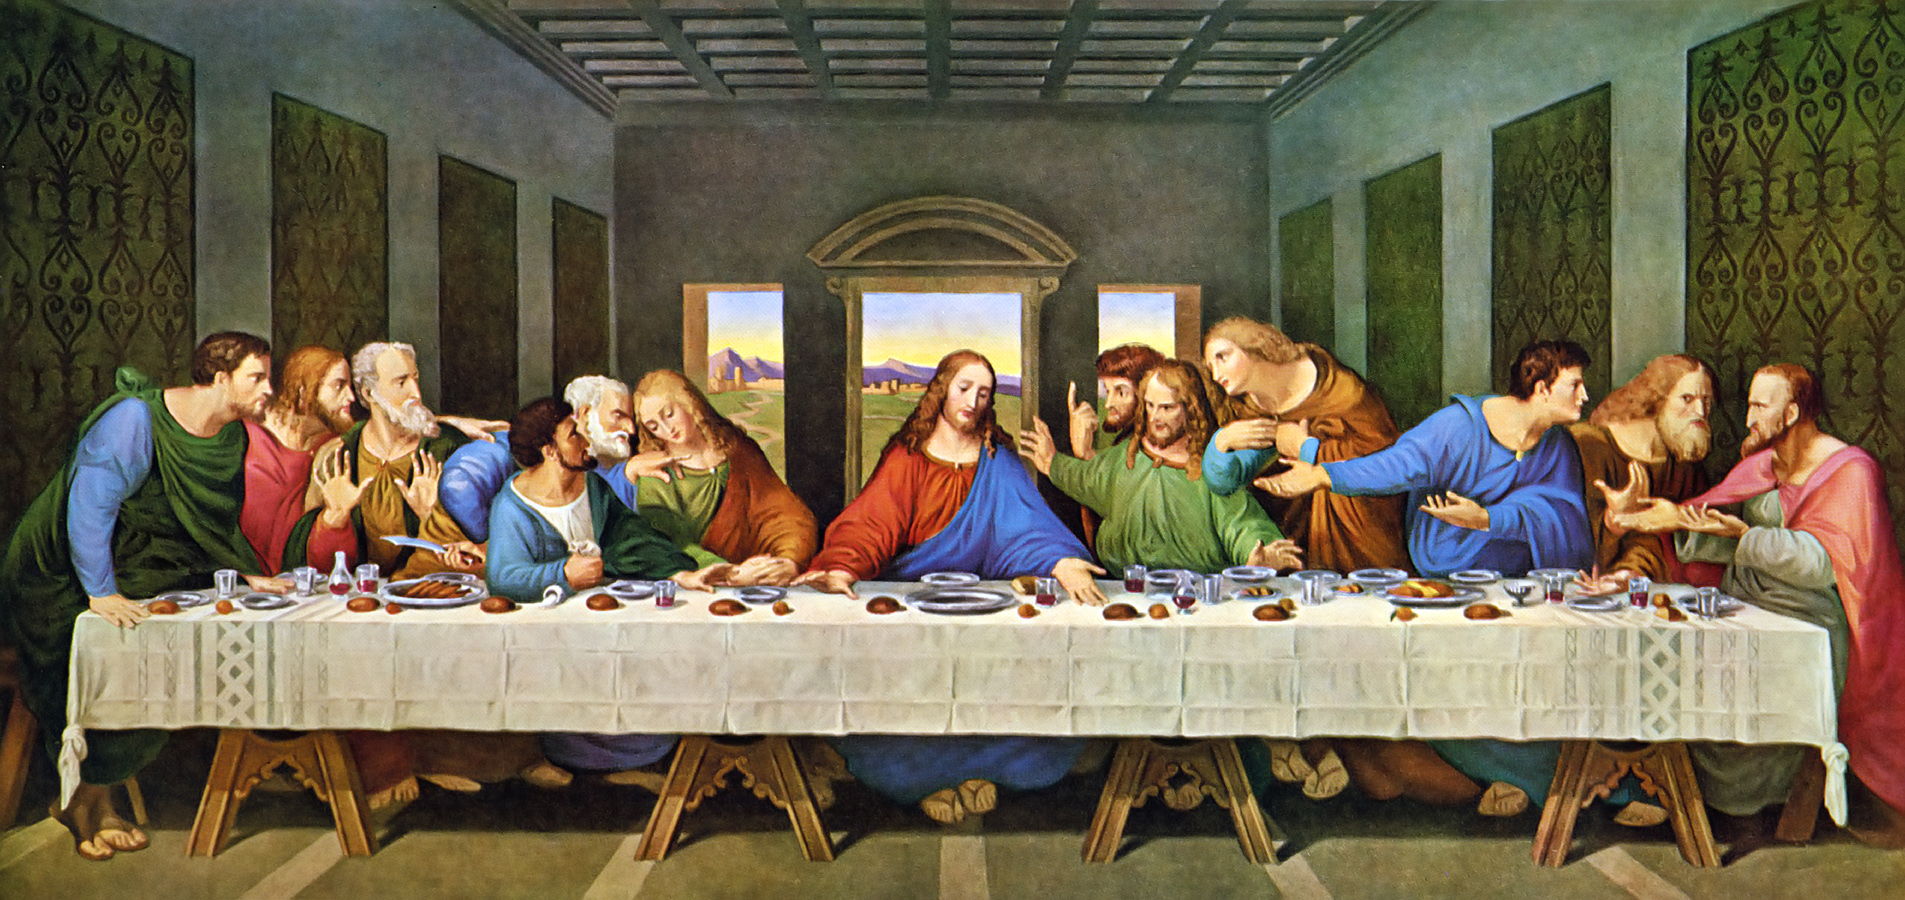 The Last Supper Restored, Leonardo Da Vinic | Minerva ... Da Vinci Last Supper Restored